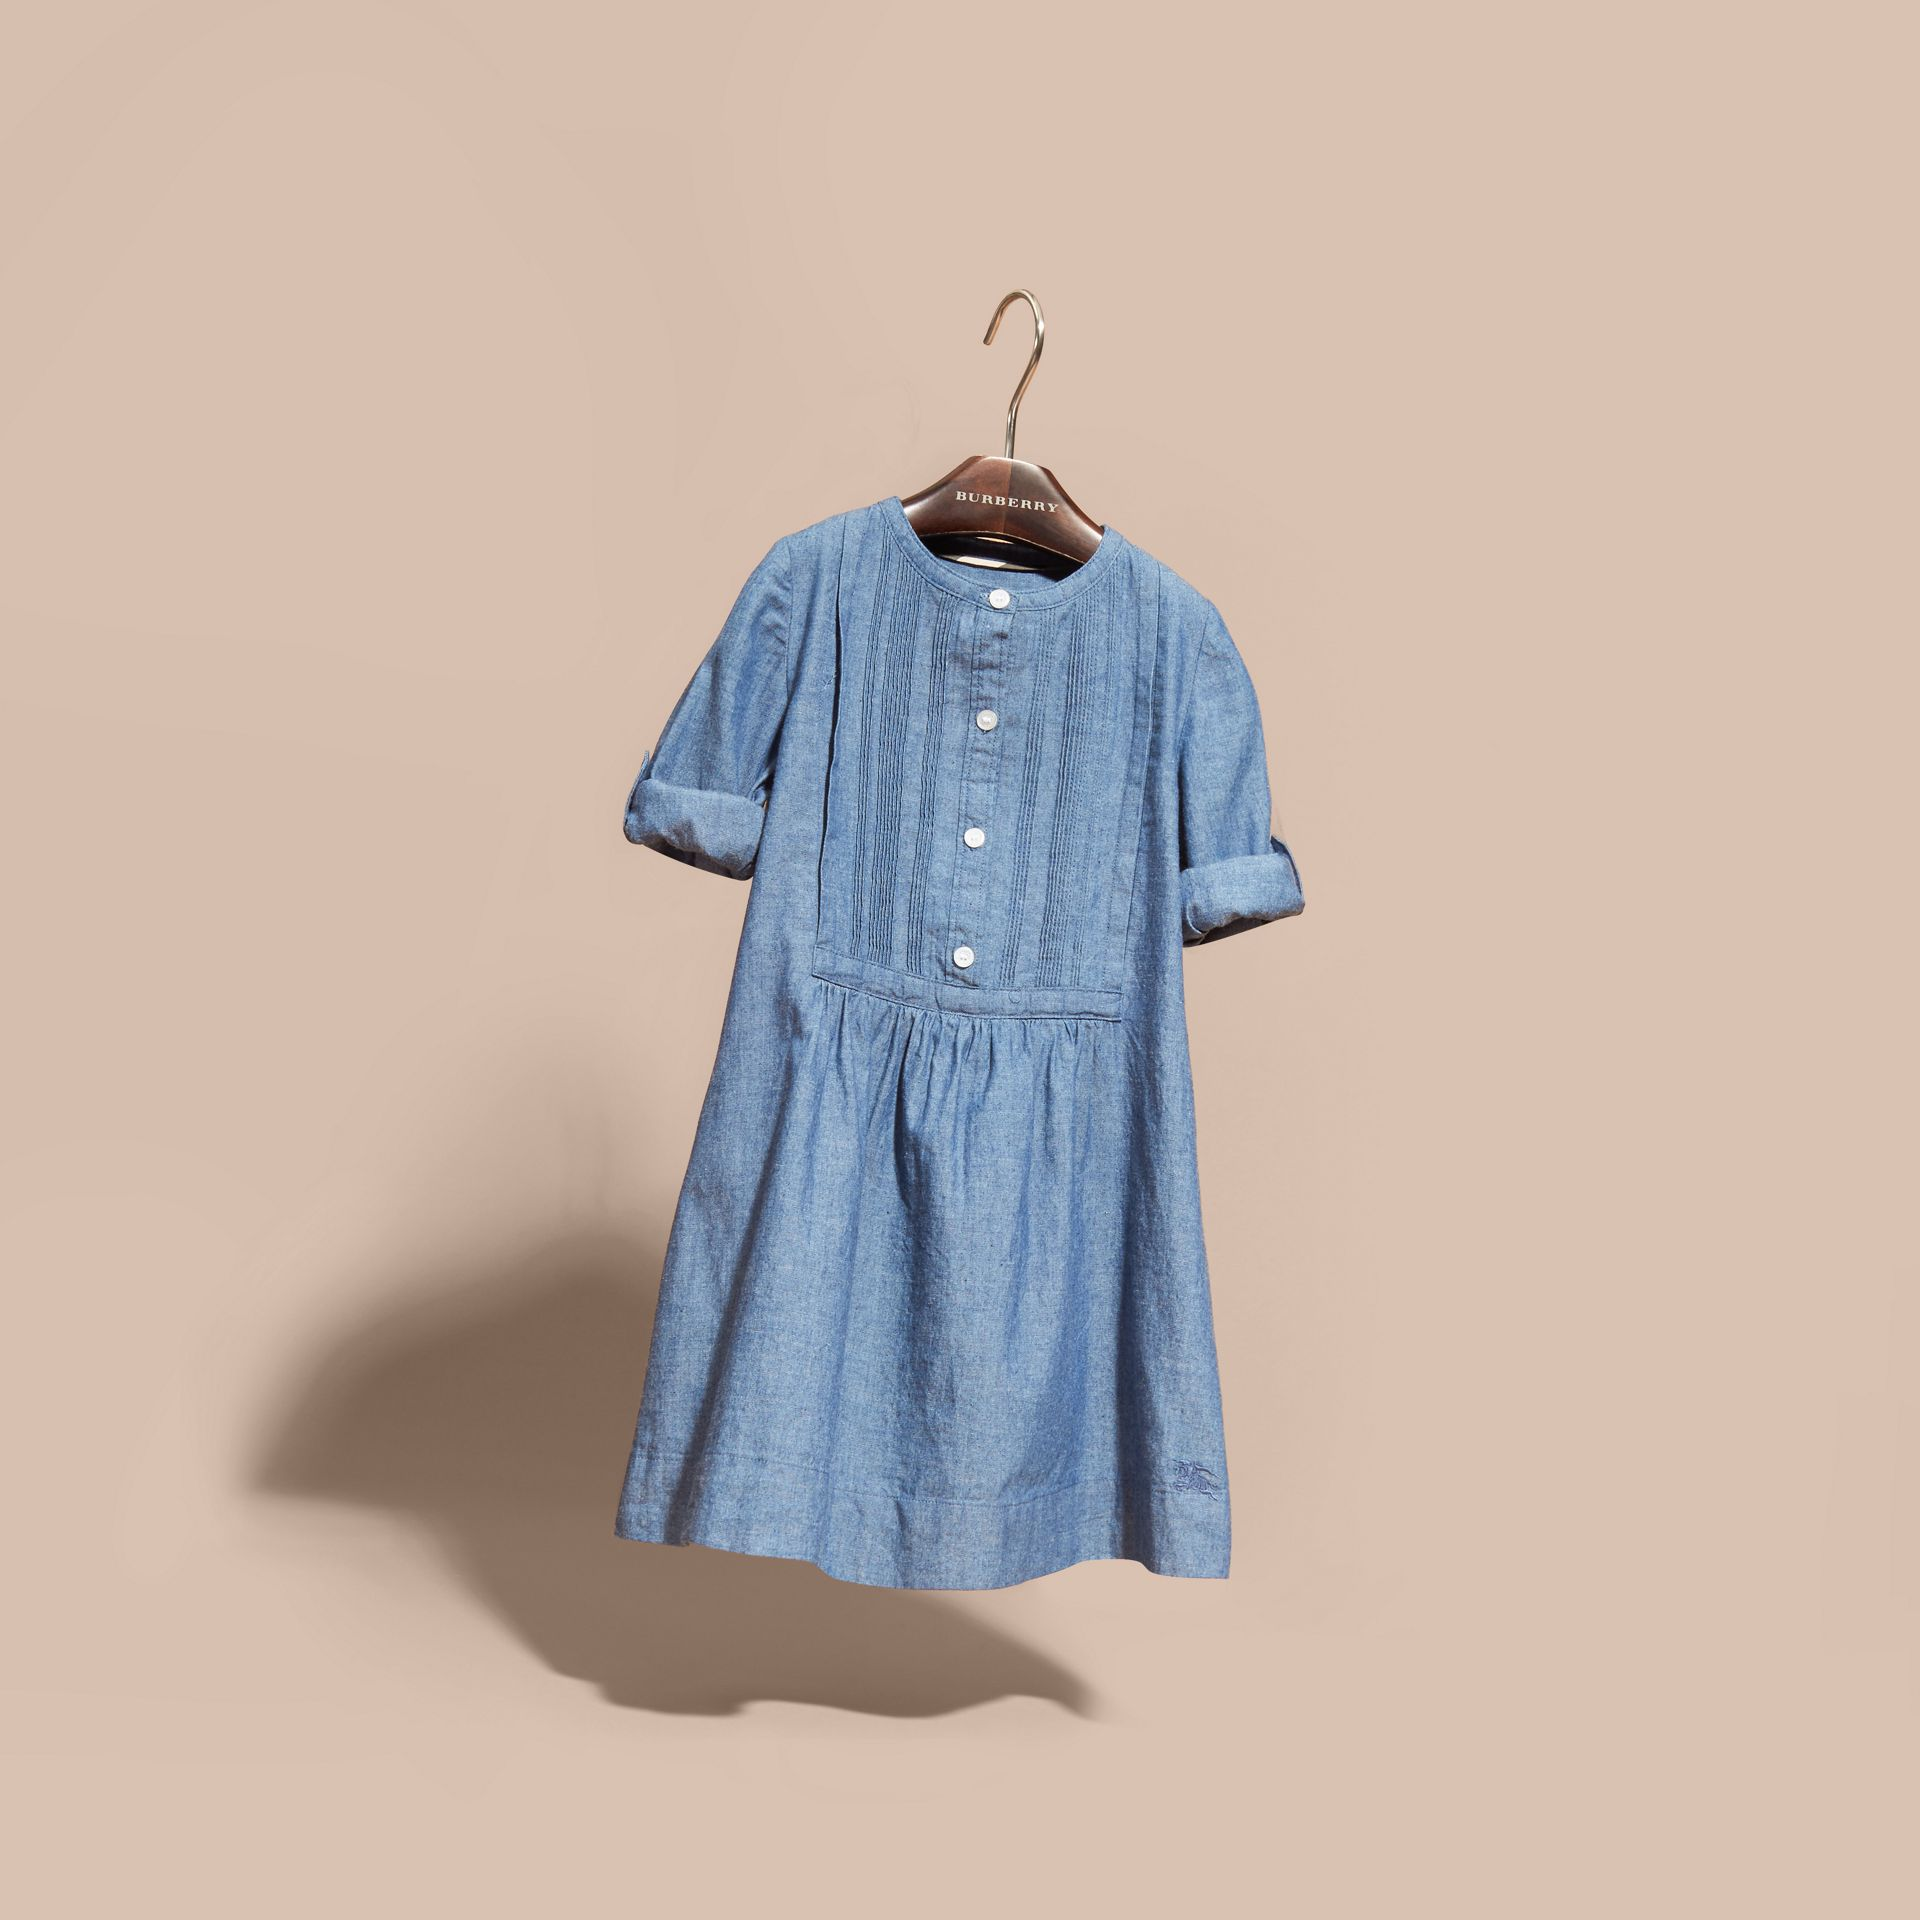 Pintuck Detail Cotton Chambray Dress - gallery image 3